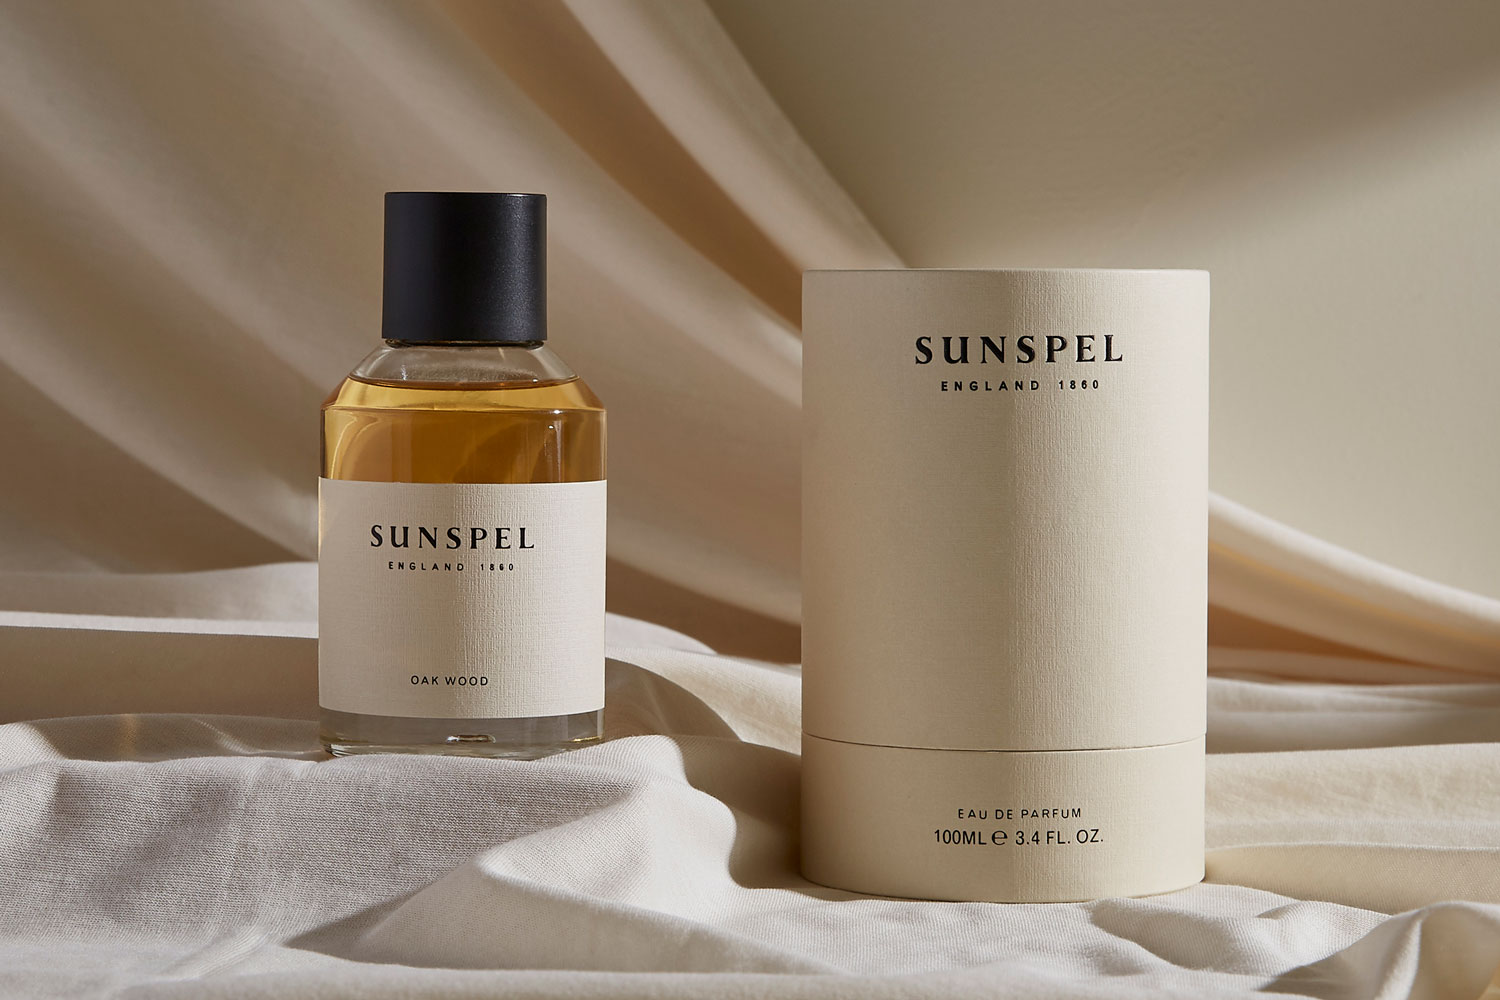 Progress Packaging Sunspel Beauty Fragrancebottle Glass Retail Luxury Carton Gift Branded Bespoke Creative Black Foill Manufacture Production 01